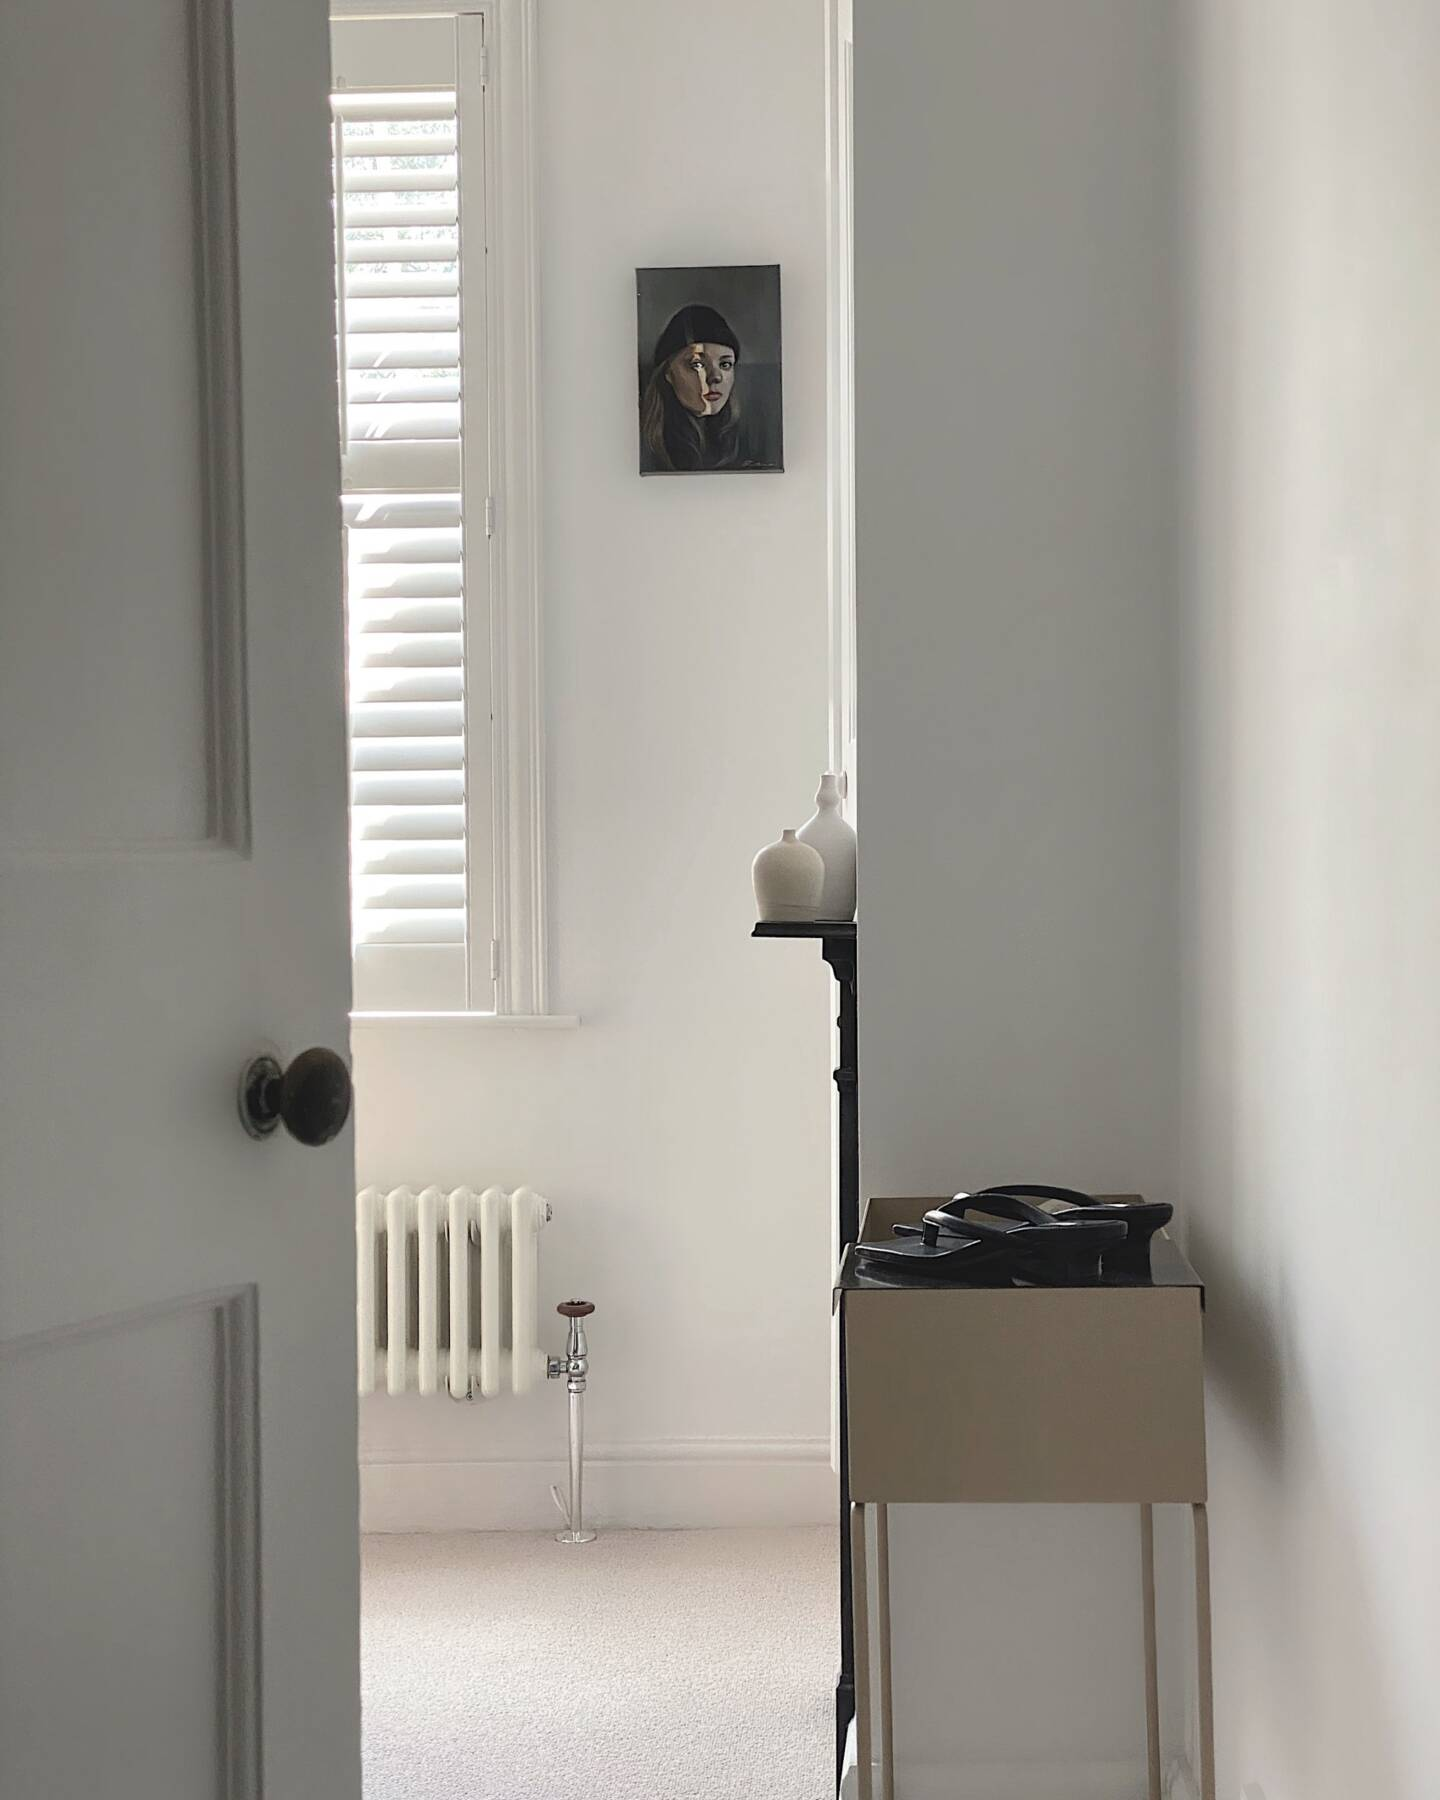 Donna's door opening revealing a Milano Windsor radiator